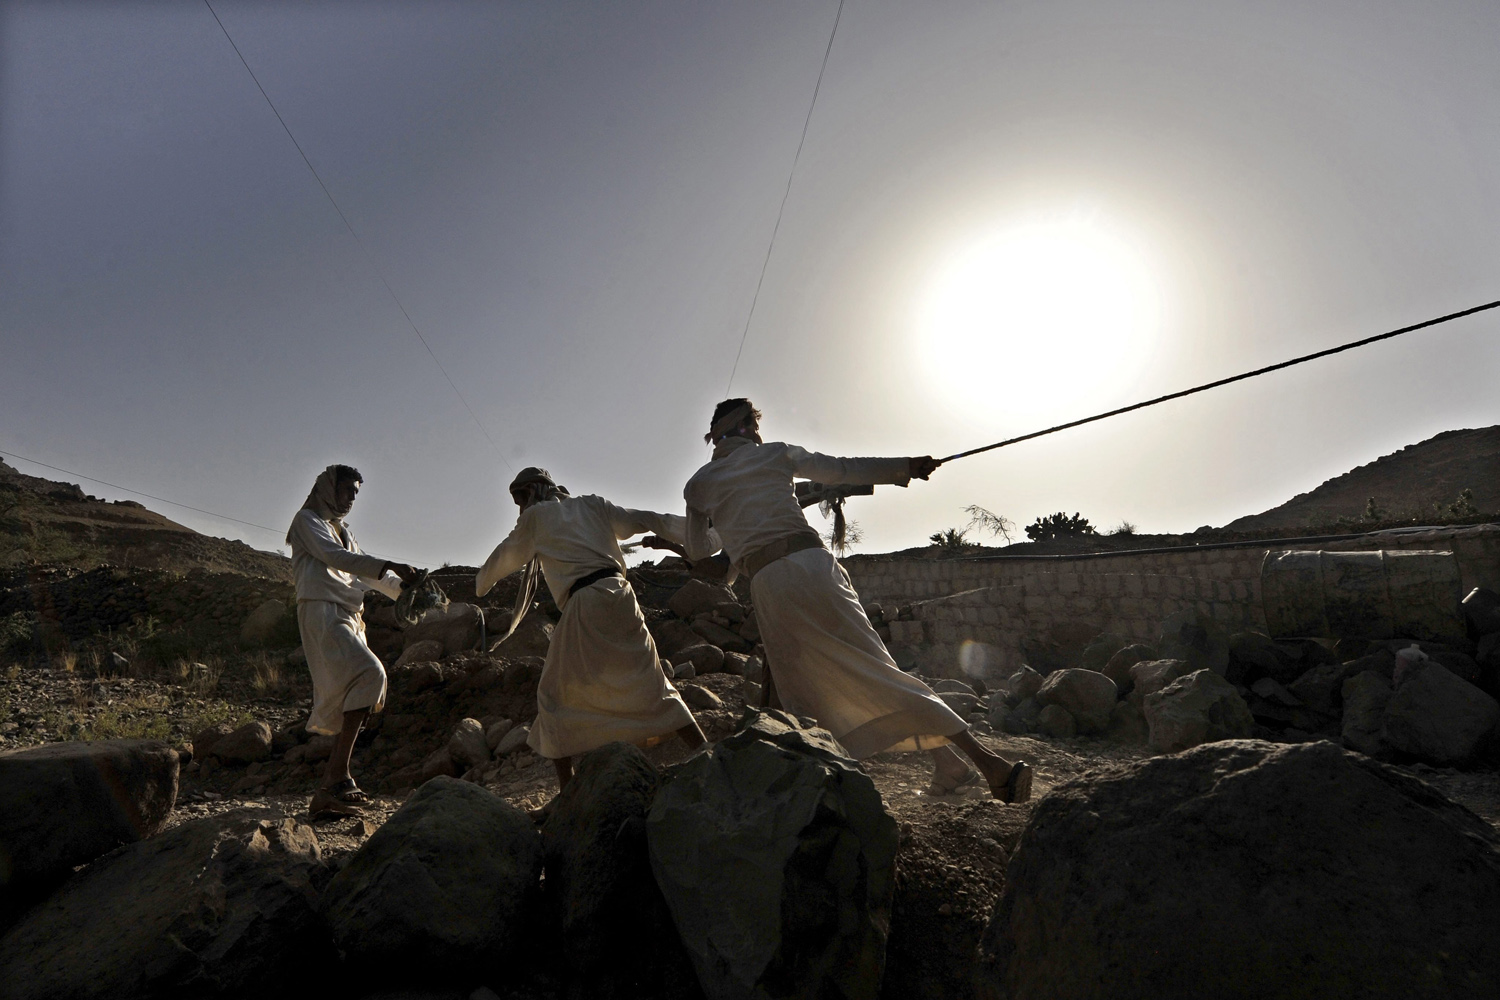 Jun. 18, 2014. Yemeni farmers pull ropes as they dig a wall in search of water due to a fuel shortage for months on the outskirts of Sana'a, Yemen.